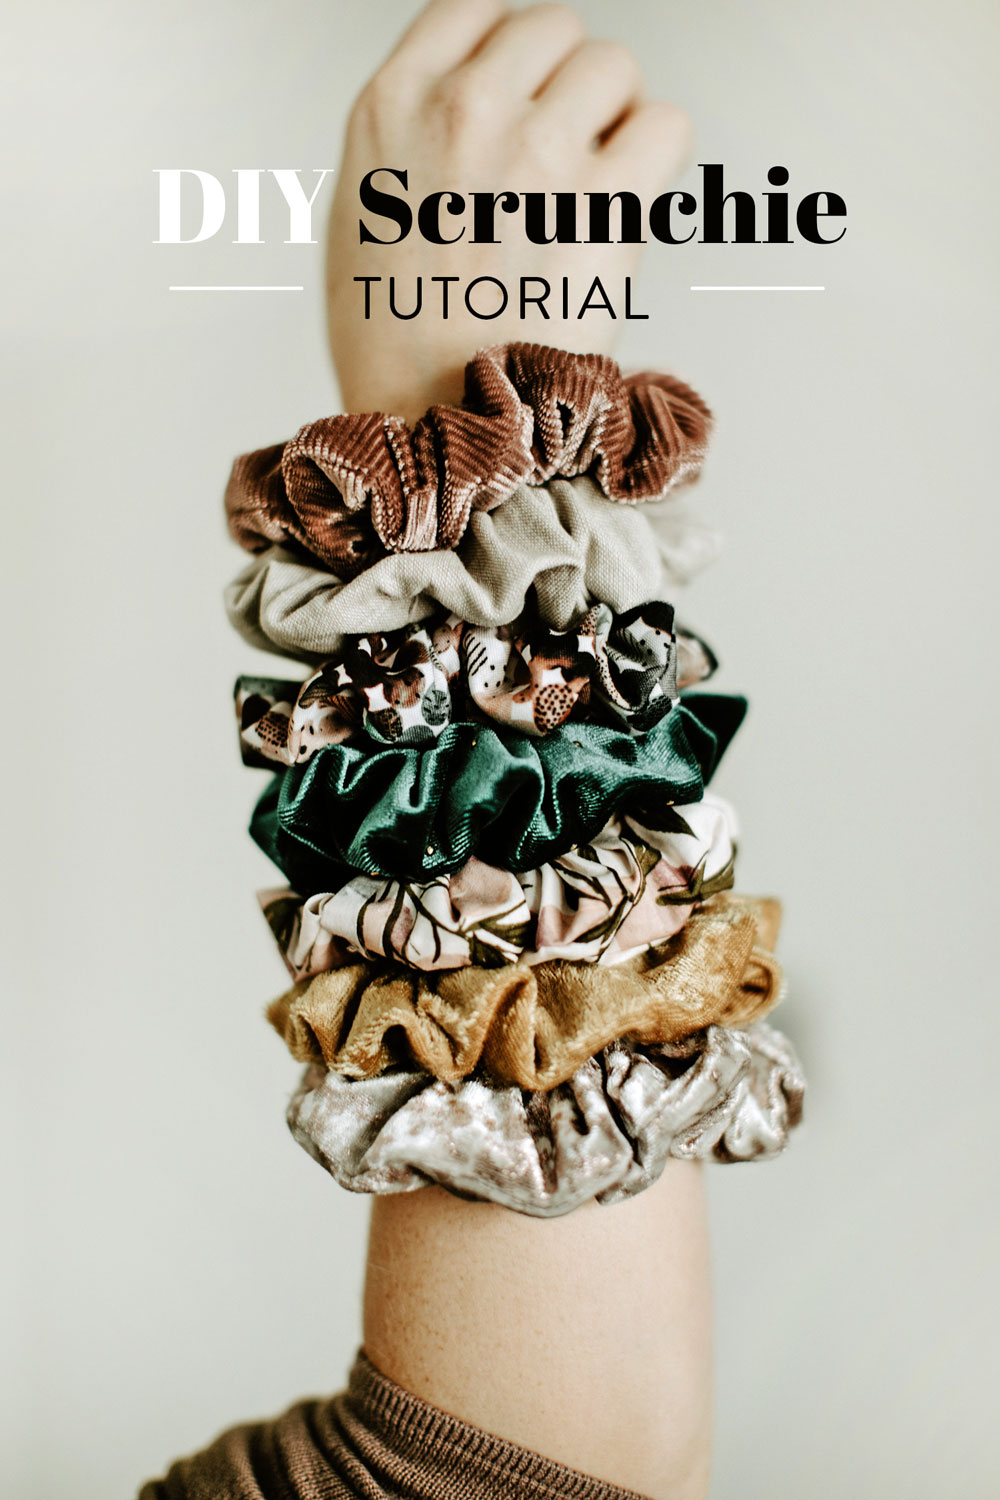 This easy DIY scrunchie tutorial is perfect for kids sewing! Use velvet and make a holiday scrunchie. suzyquilts.com #scrunchietutorial #diysewing